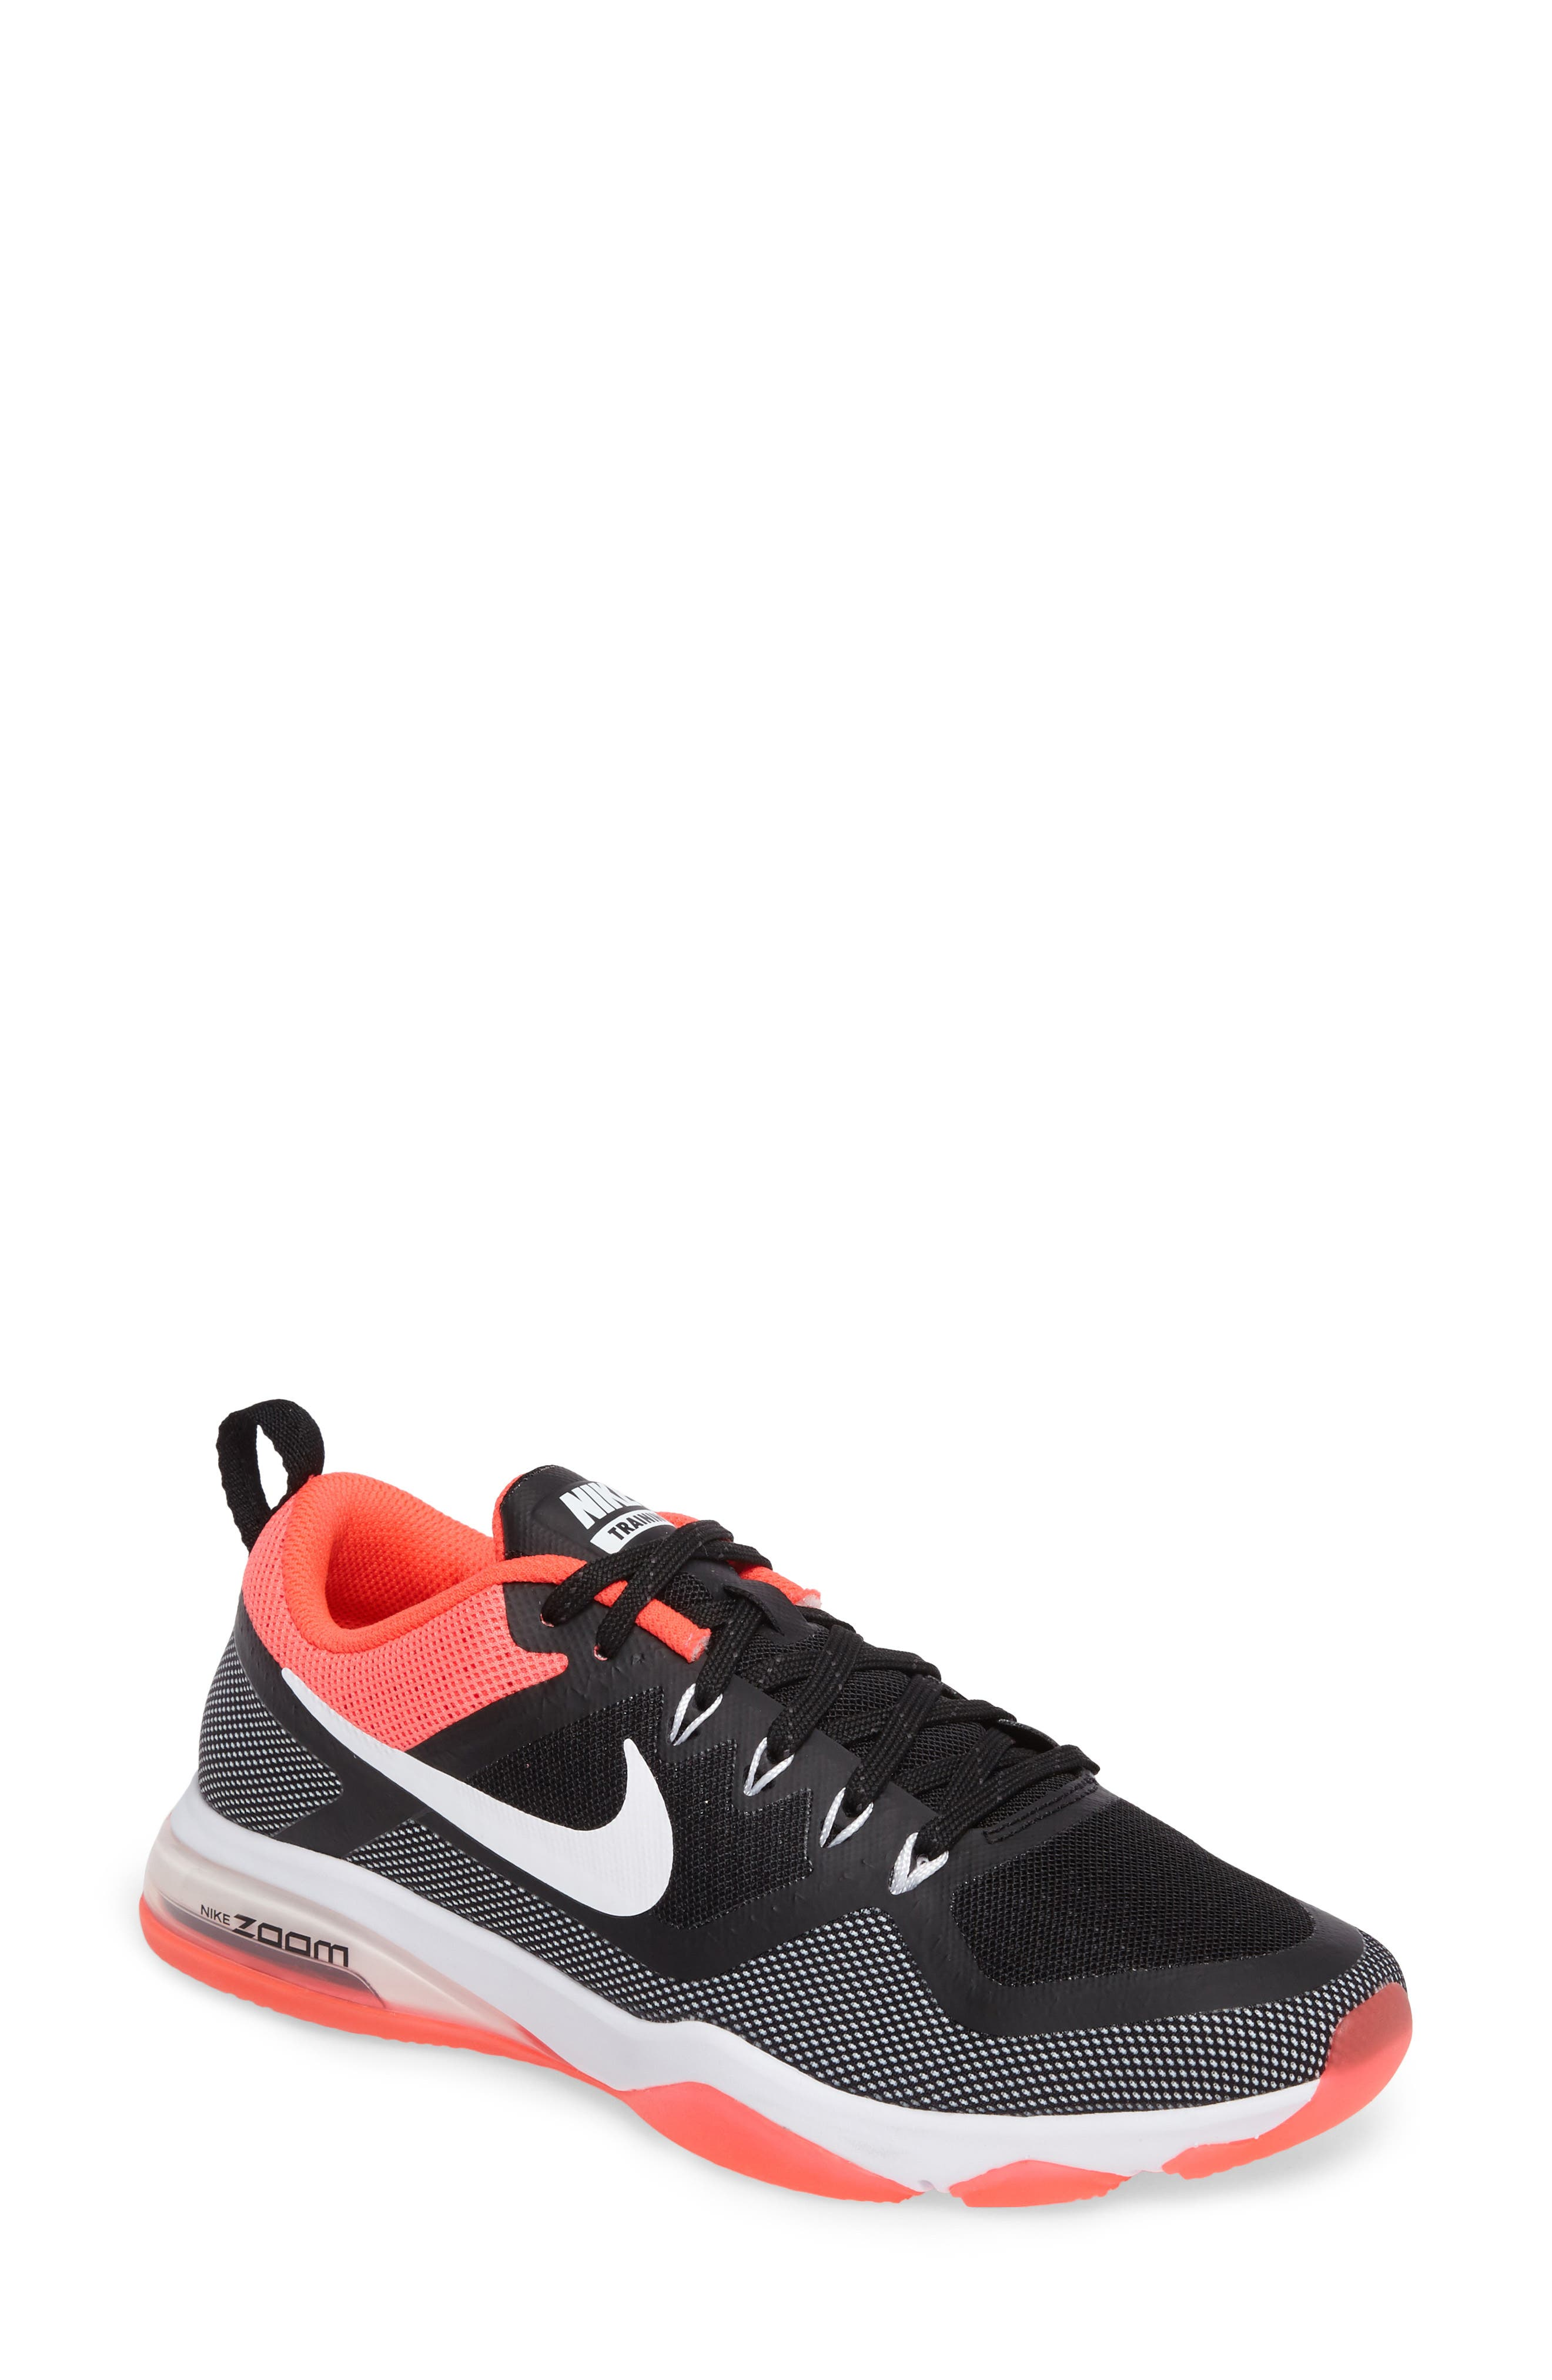 Air Zoom Fitness Training Shoe,                             Main thumbnail 1, color,                             Black/ White/ Solar Red